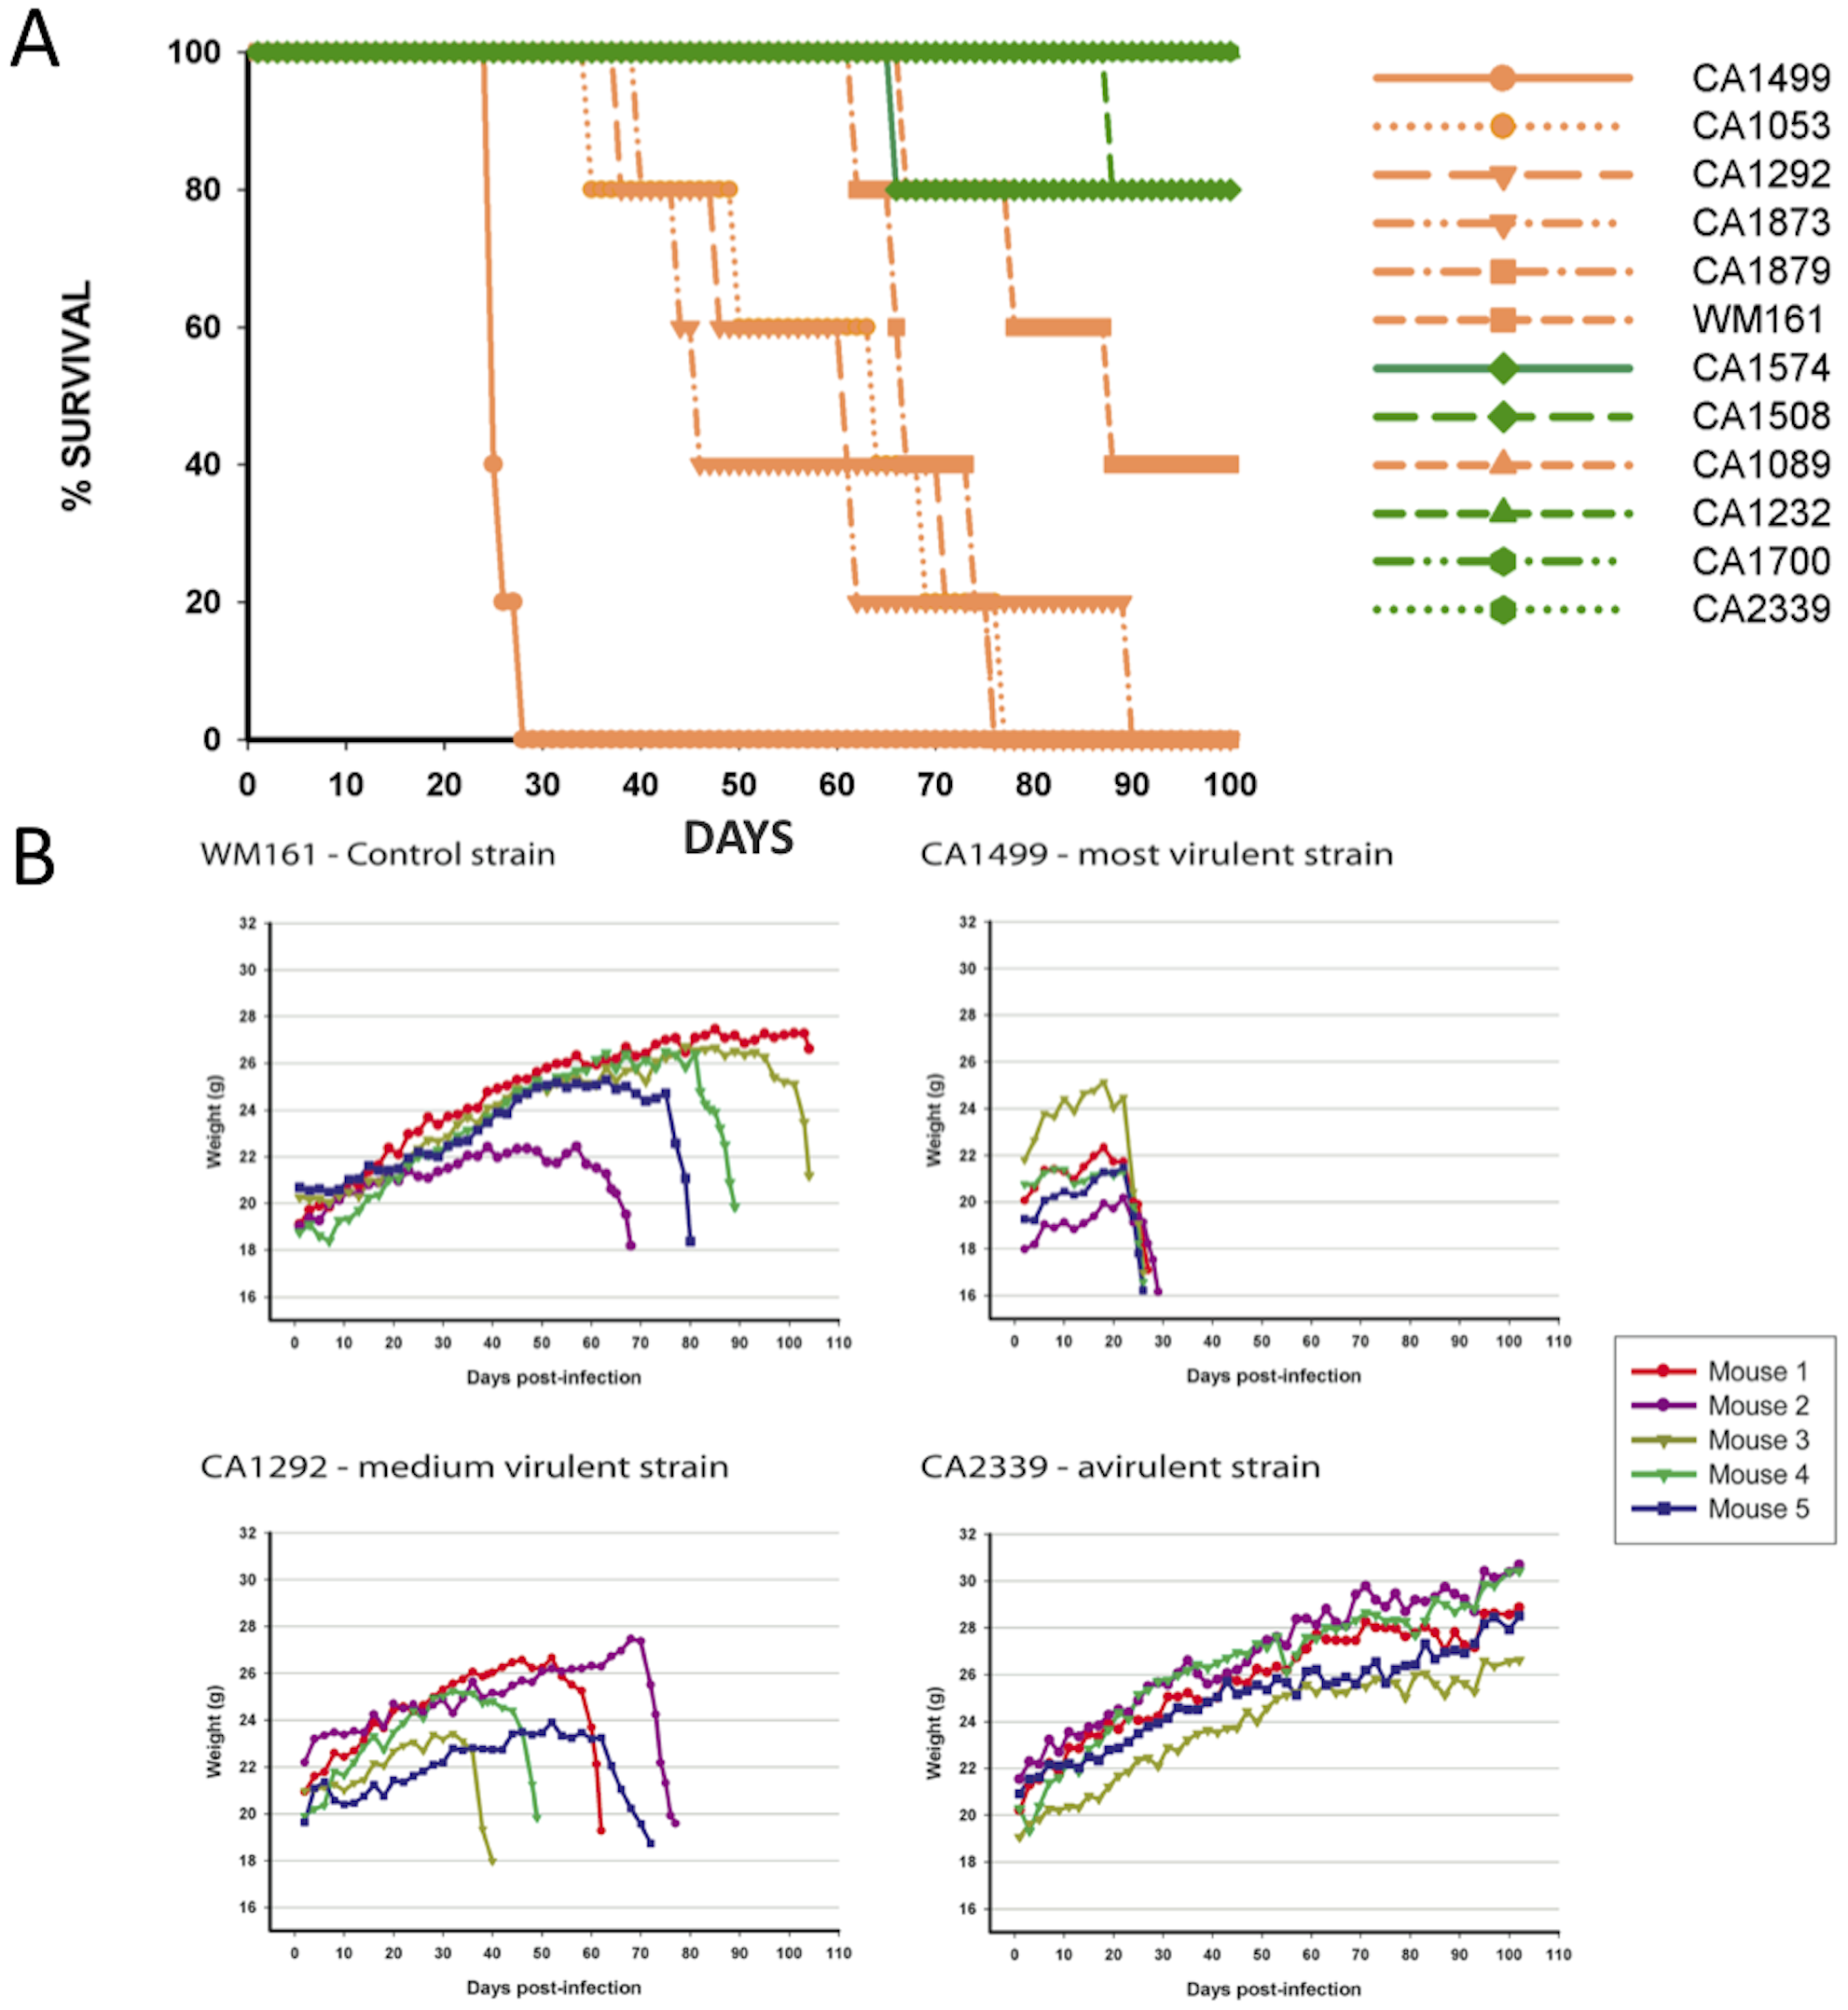 Isolates from the VGIIIa group exhibit increased virulence compared to VGIIIb in an in vivo murine model of infection.